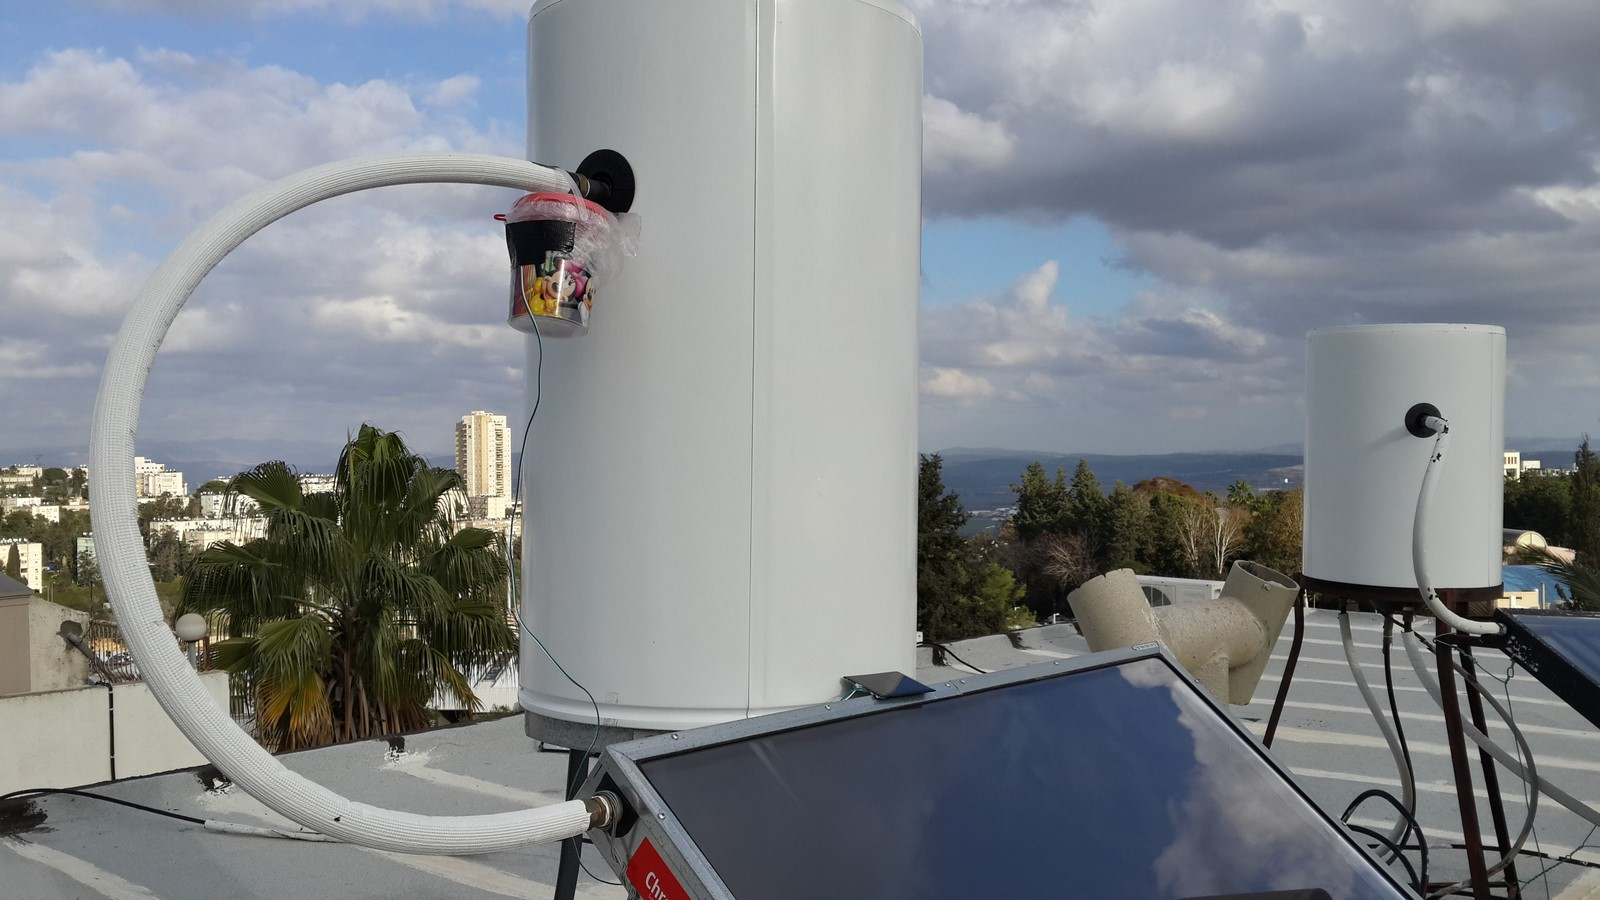 Solar powered ESP8266 on a water heater